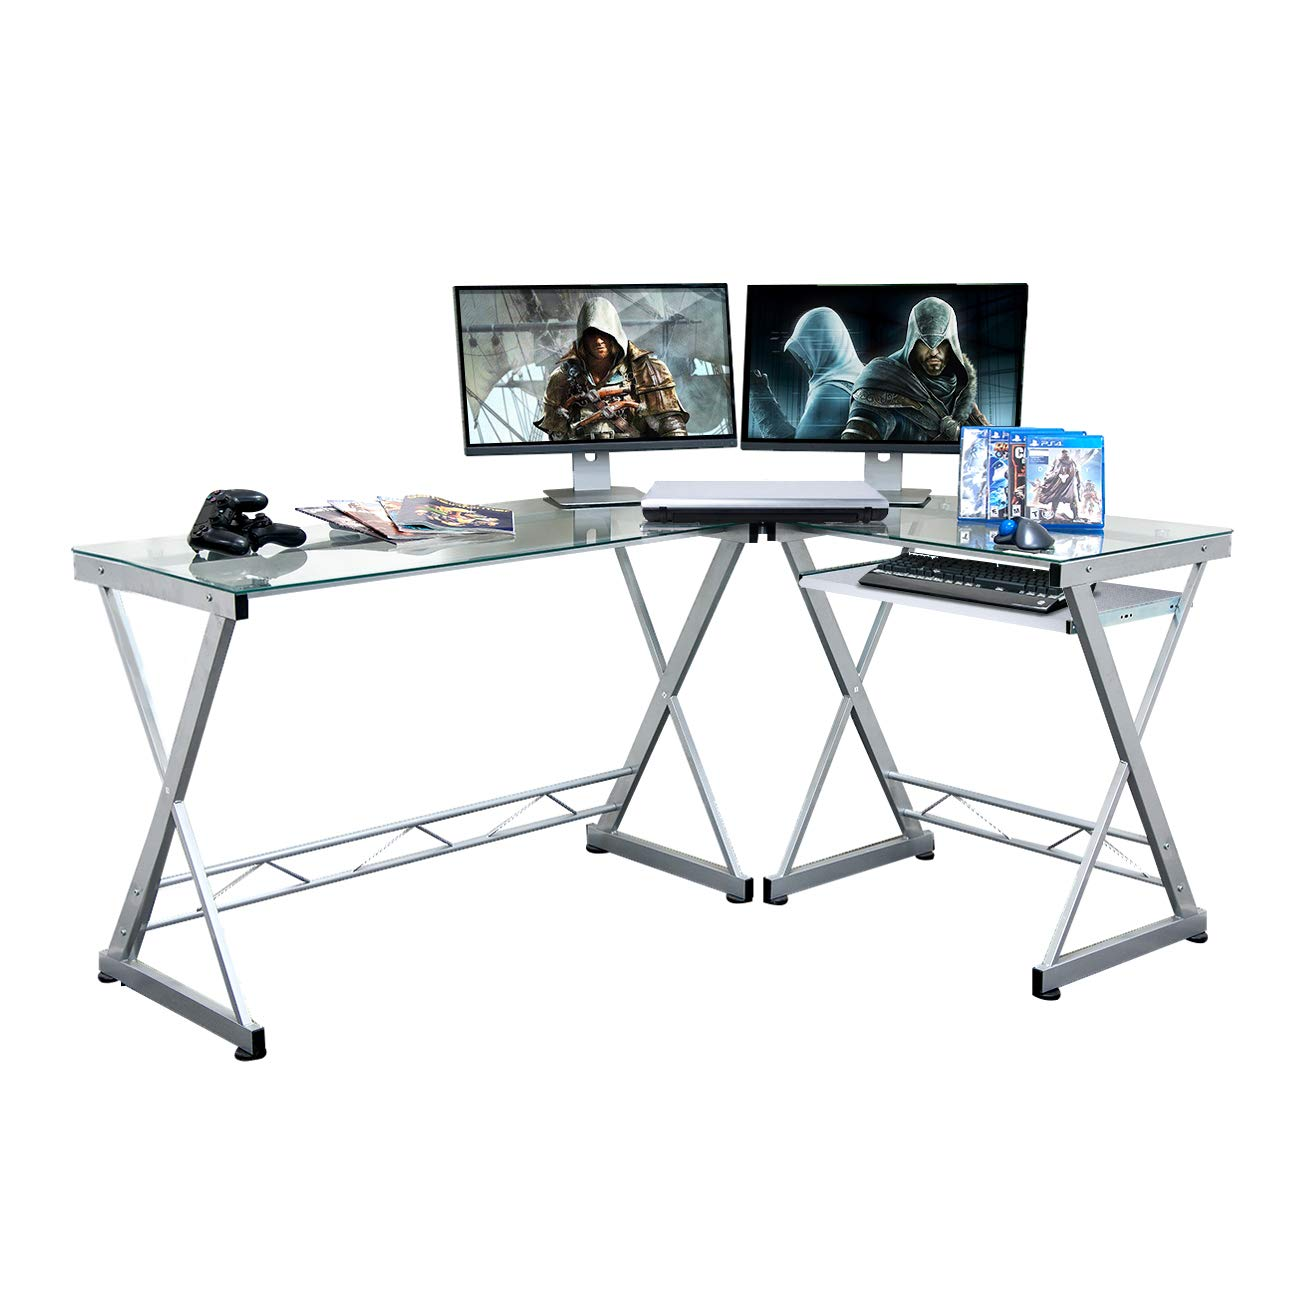 Techni sport Gaming Desk Collection Style Reno – Multi Monitors – X Shapes – Tempered Glass Top – Keyboard Panel